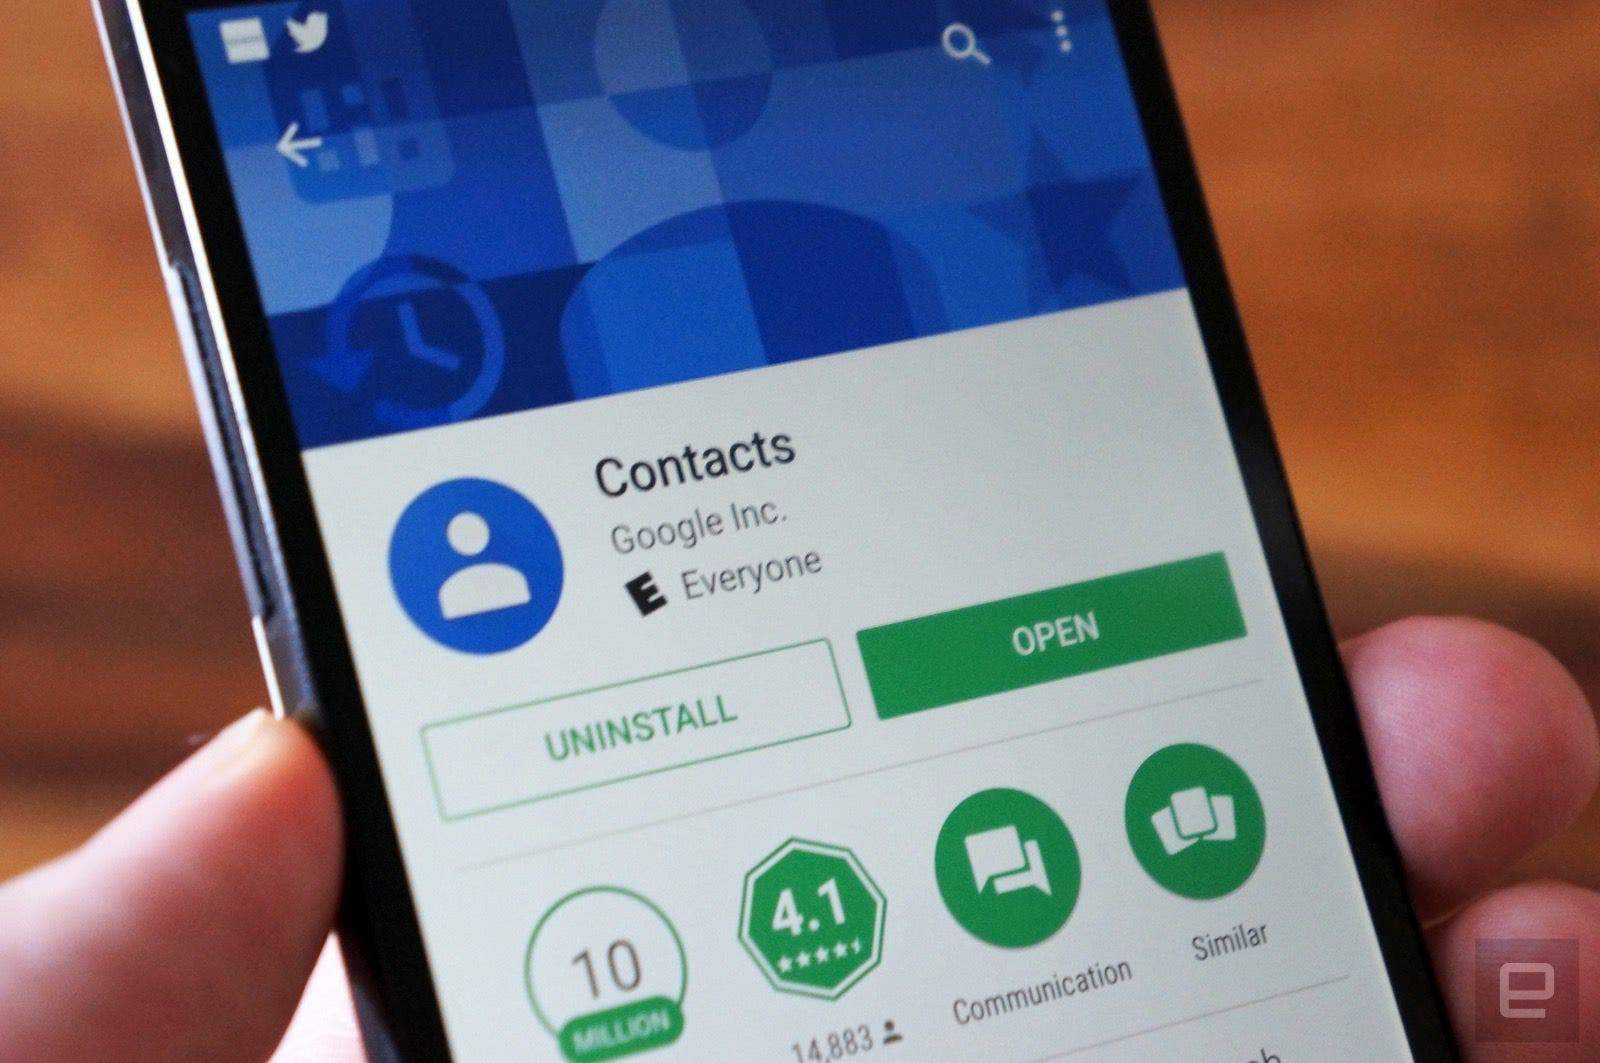 Restore deleted contacts using Contacts app